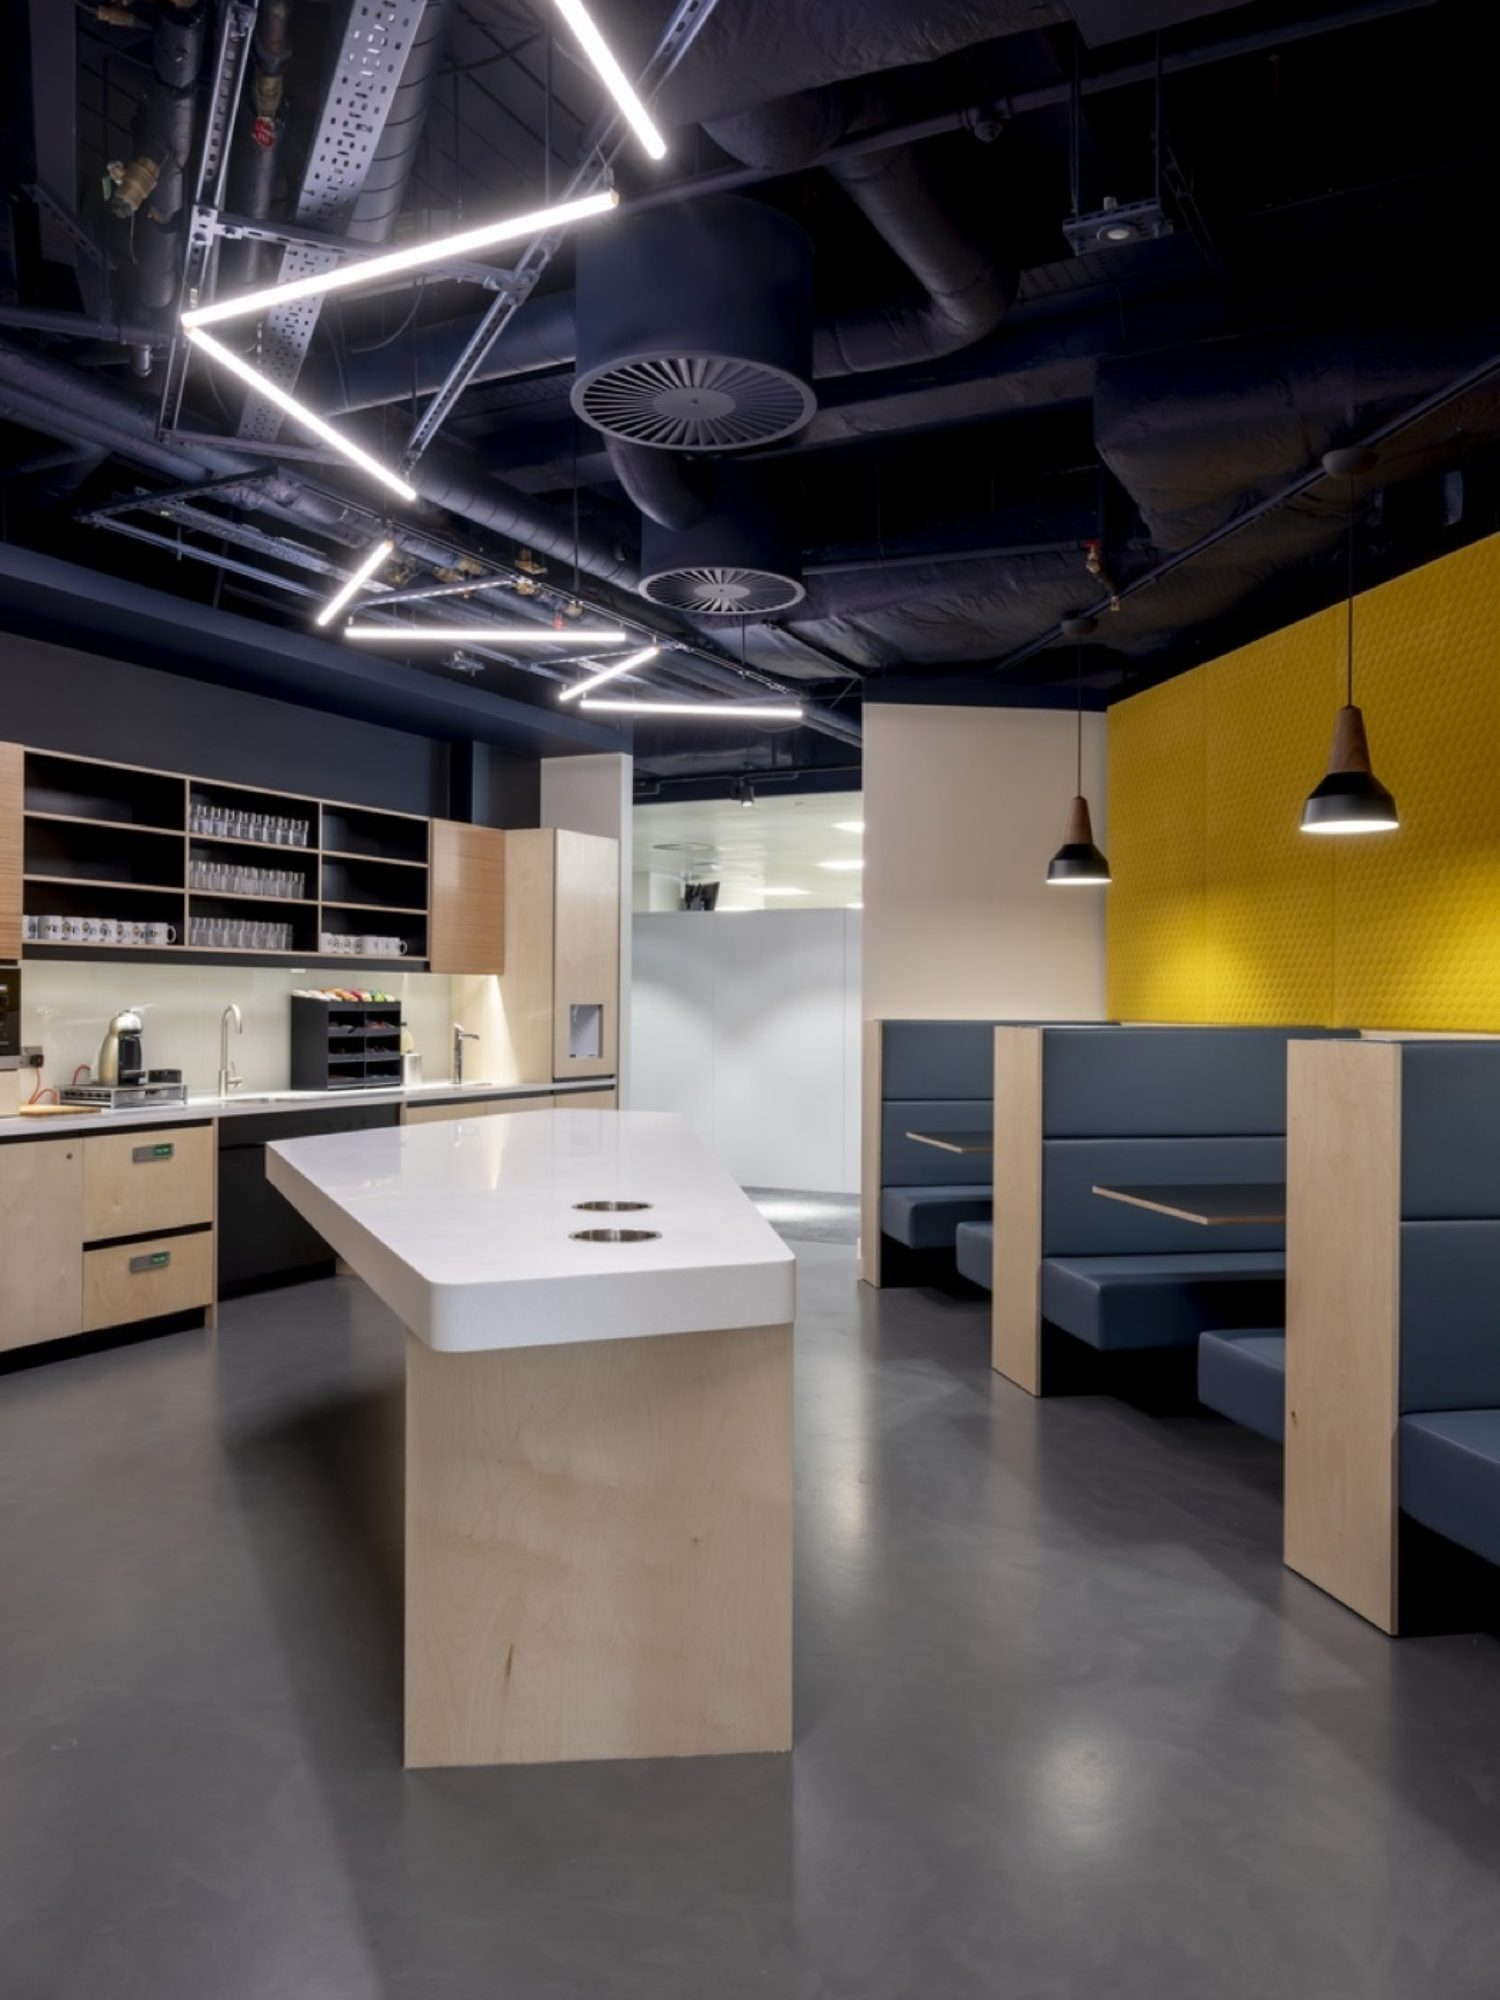 ITV kitchen fit out with exposed services